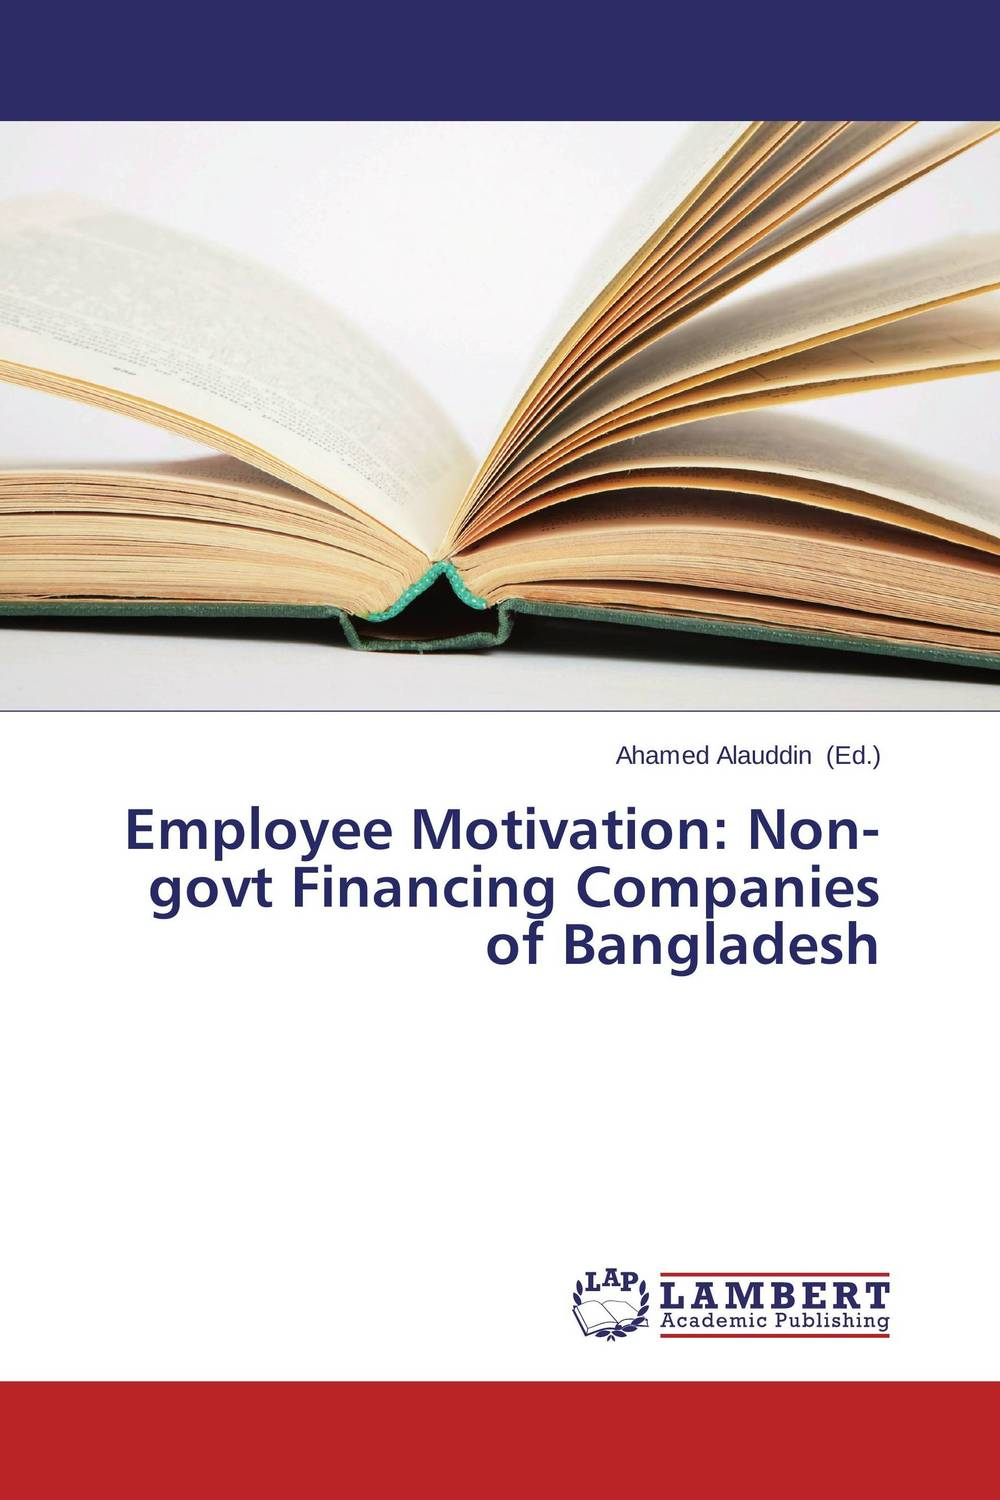 Employee Motivation: Non-govt Financing Companies of Bangladesh mick johnson motivation is at